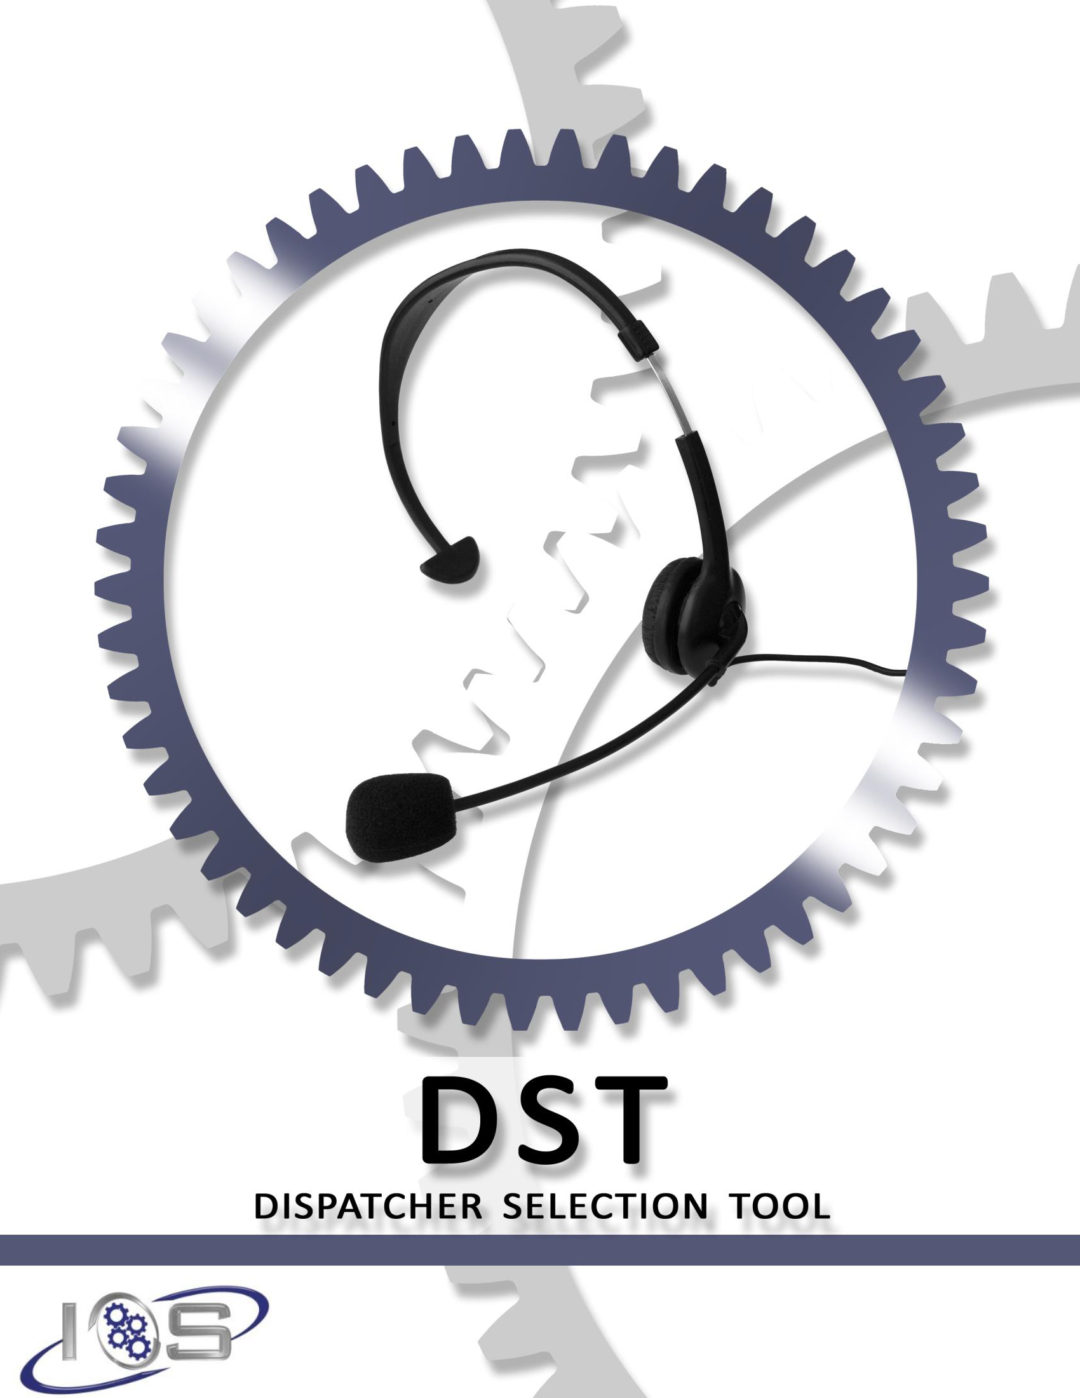 Dispatcher Selection Tool - DST